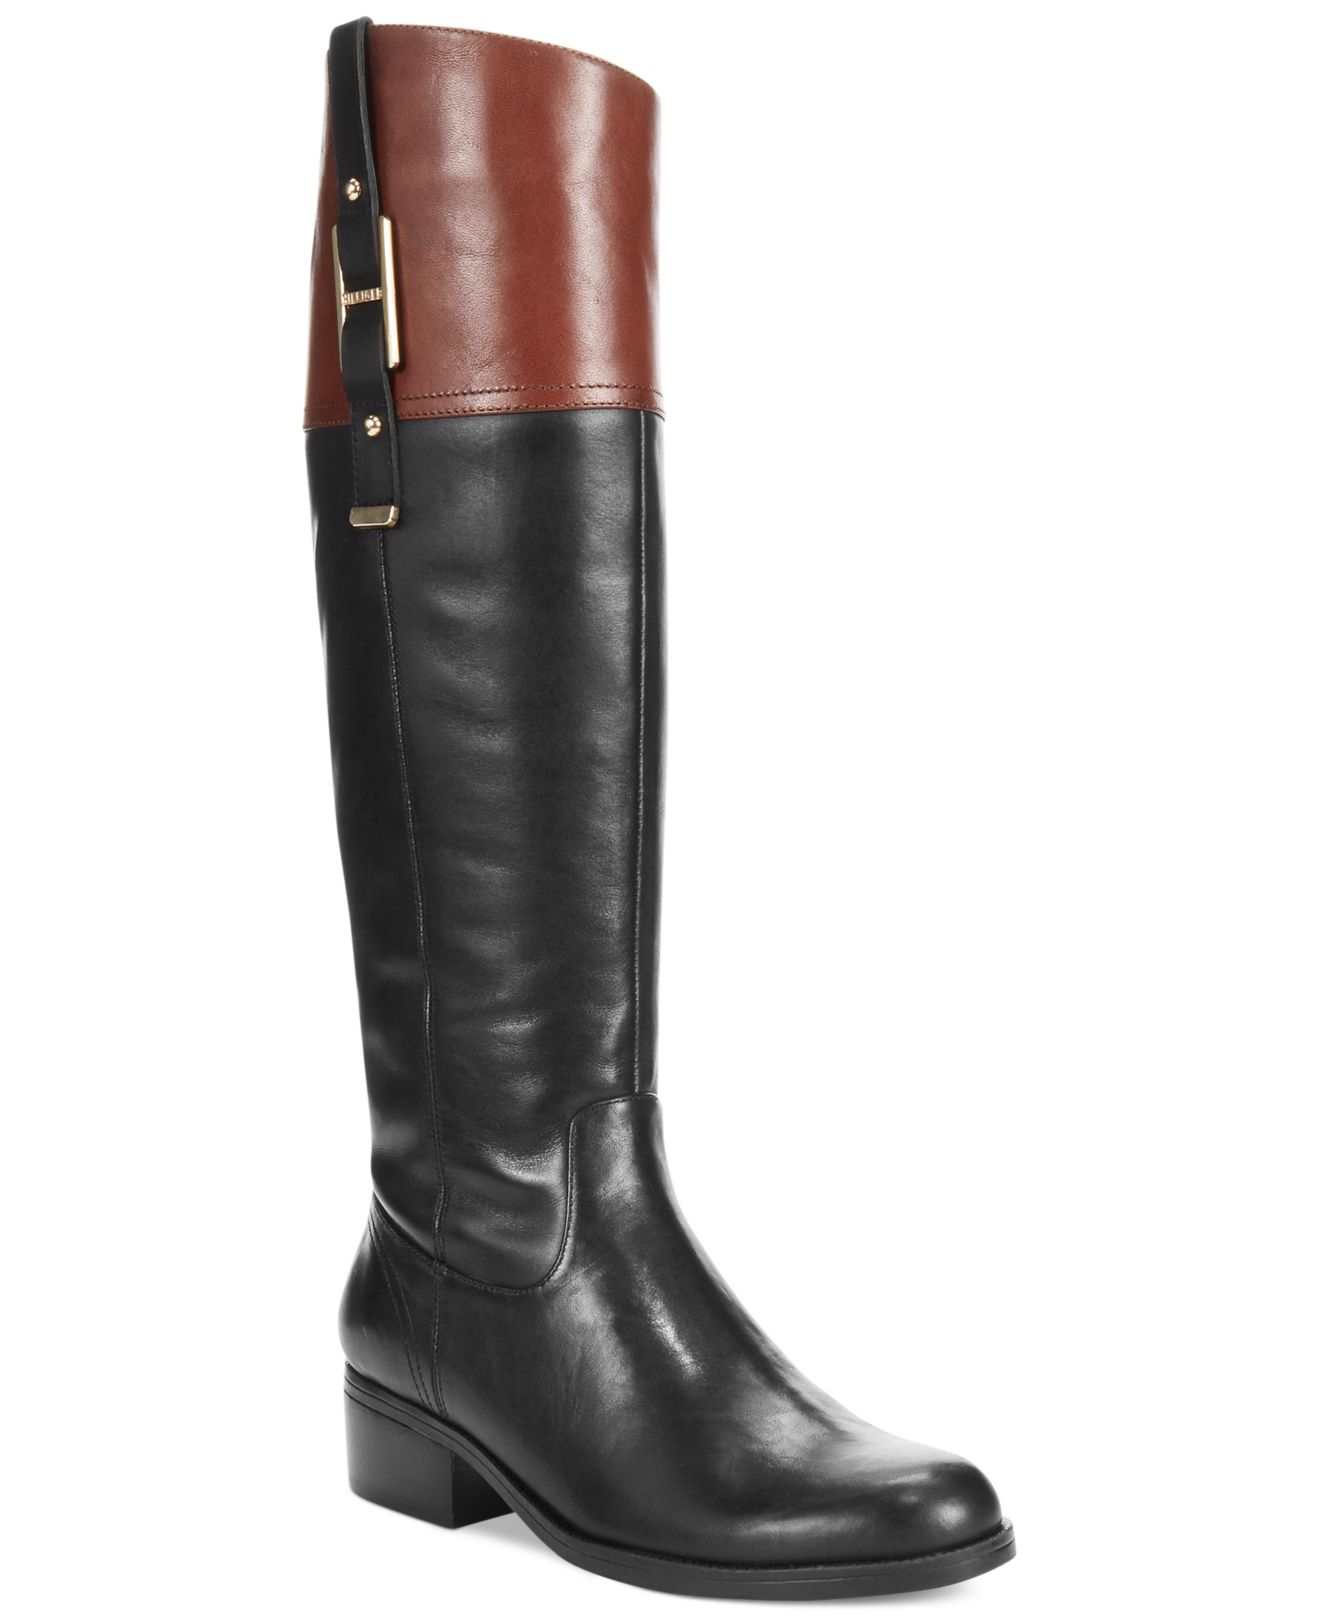 lyst tommy hilfiger women 39 s gibsy wide calf riding boots. Black Bedroom Furniture Sets. Home Design Ideas